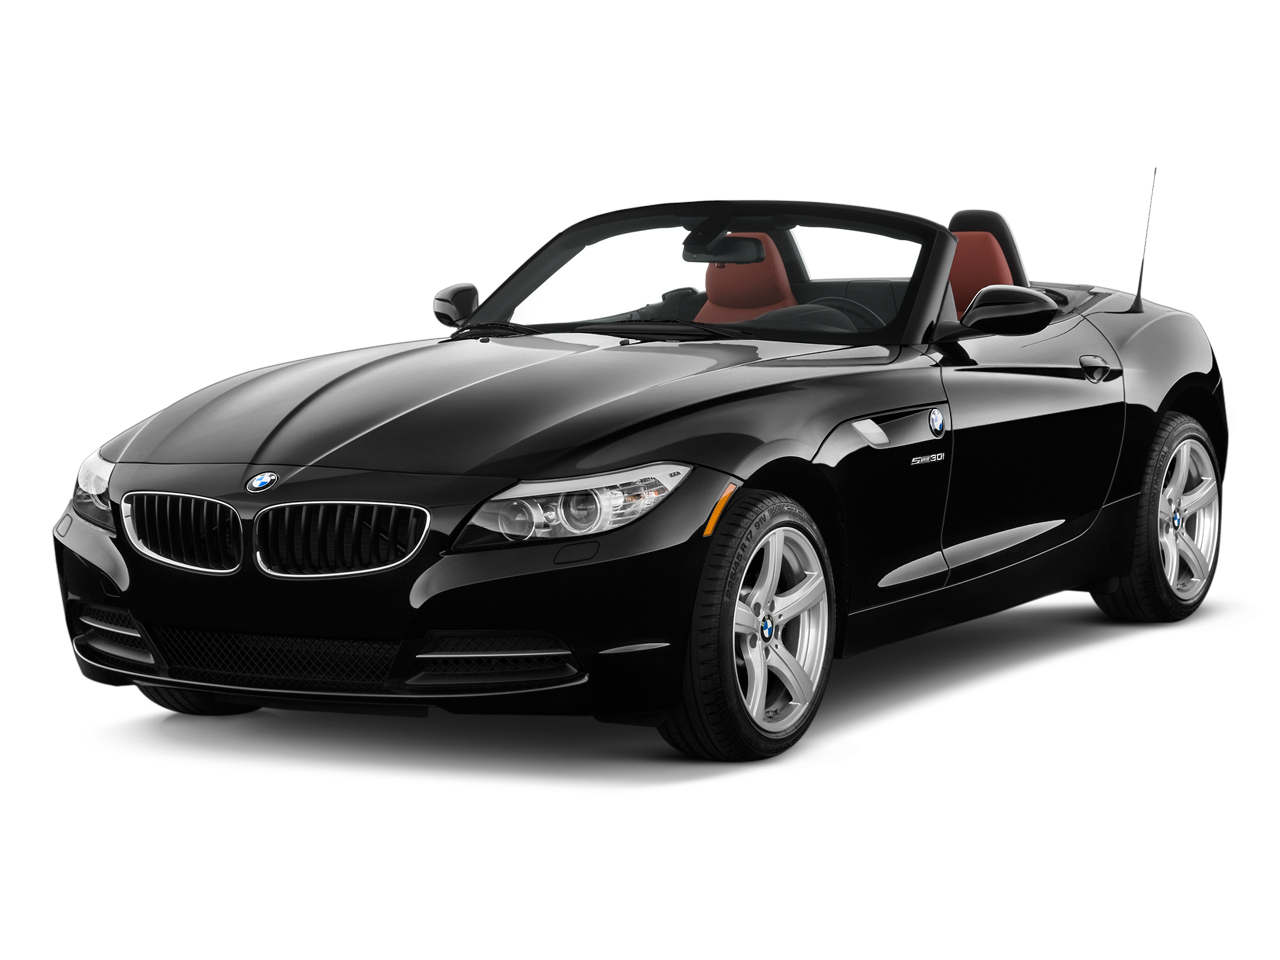 BMW Z4 SDrive35i Roadster